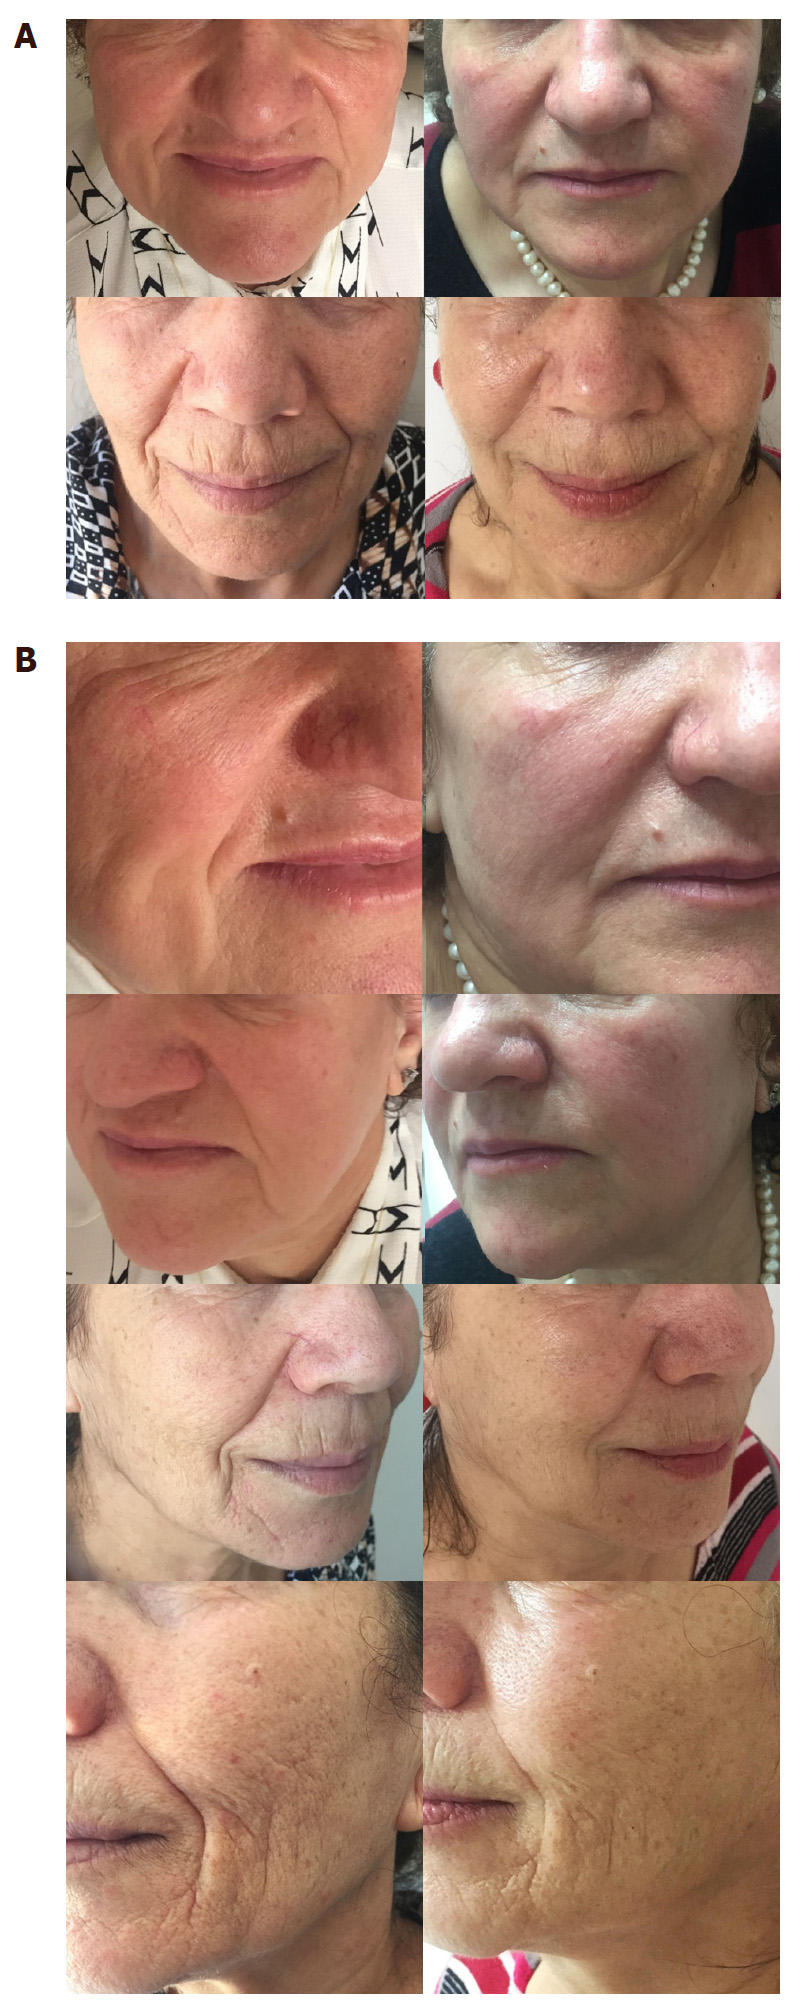 Permanent volumizing and contouring of the lower face using 350